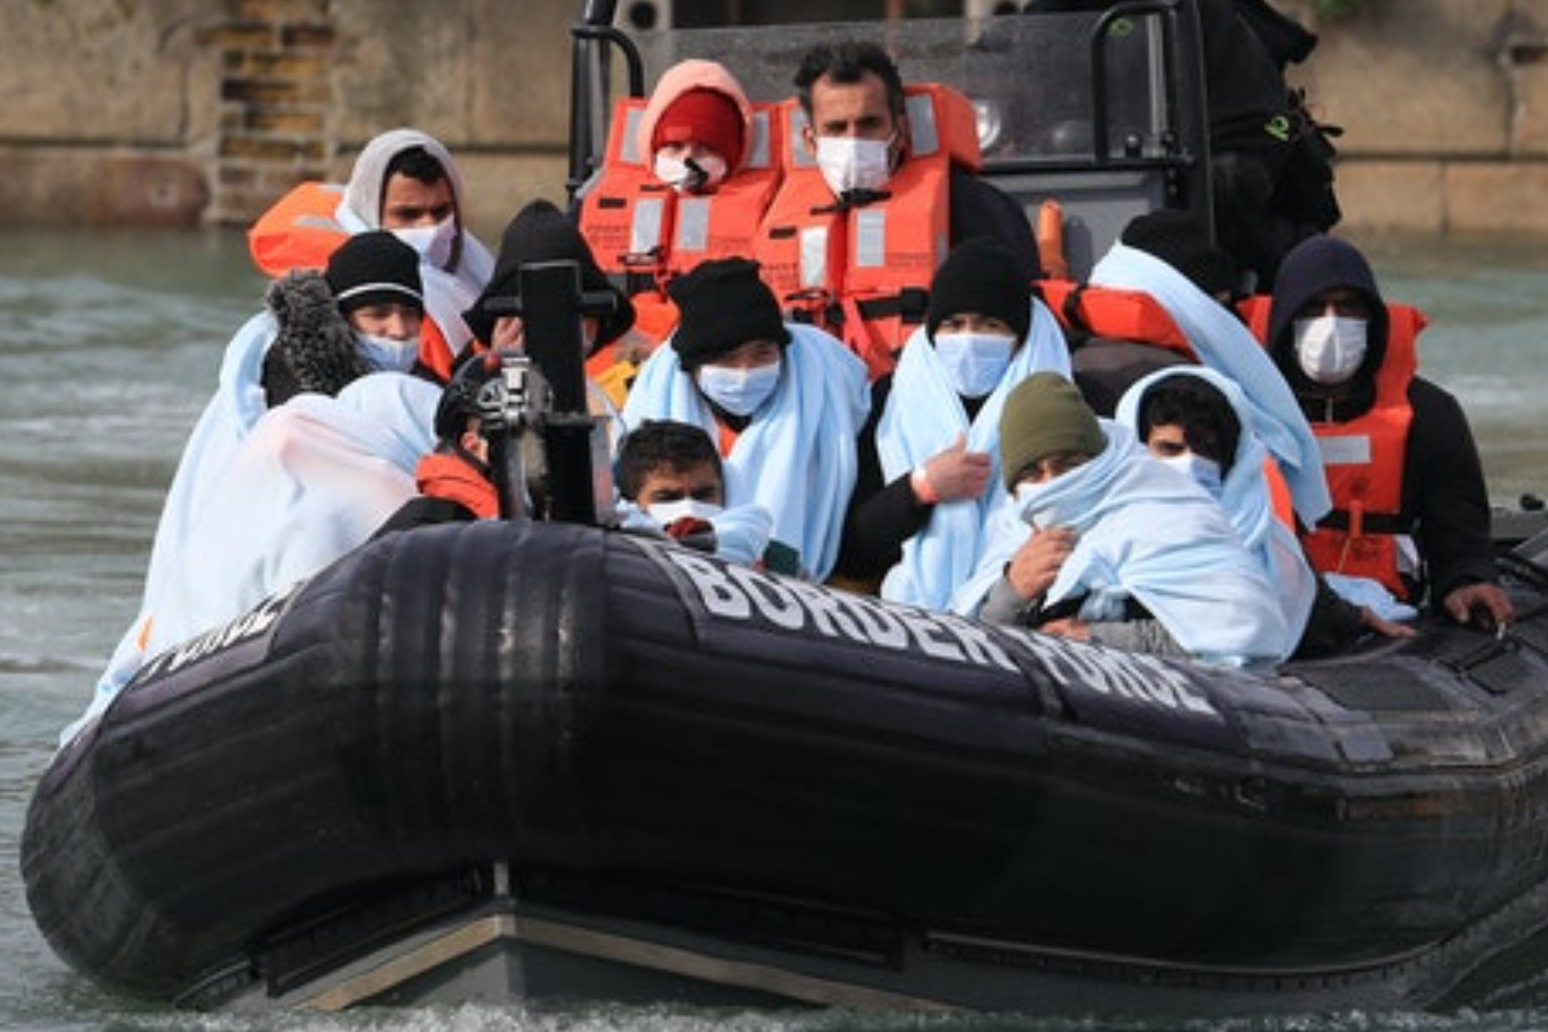 Migrant boat deaths should be a 'wake-up call' for those in power – charity